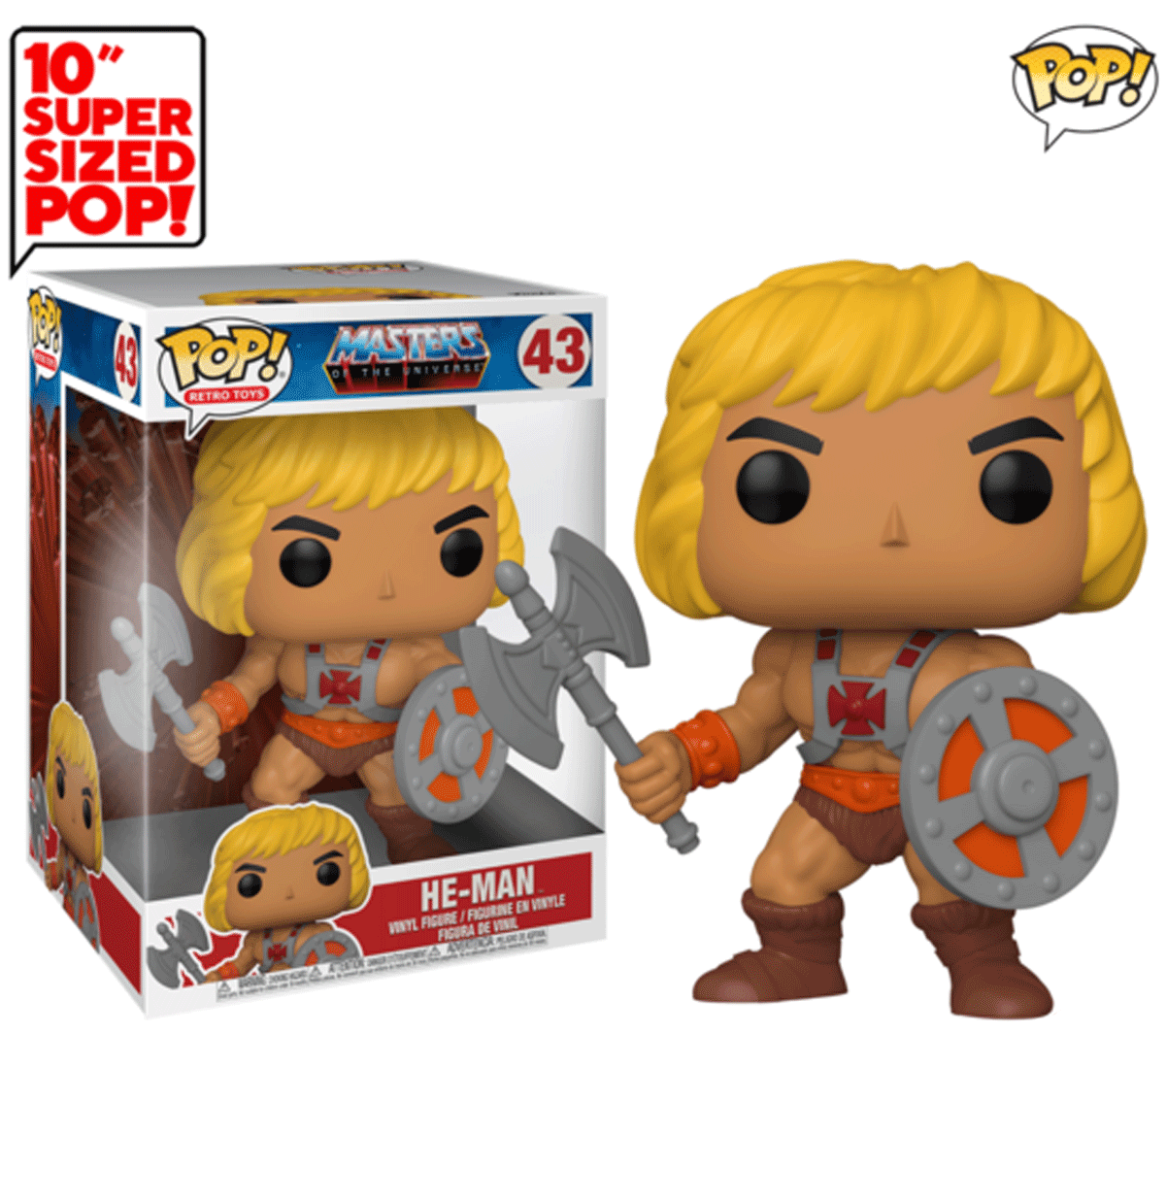 Funko Pop! Masters of the Universe - He-Man 25 cm